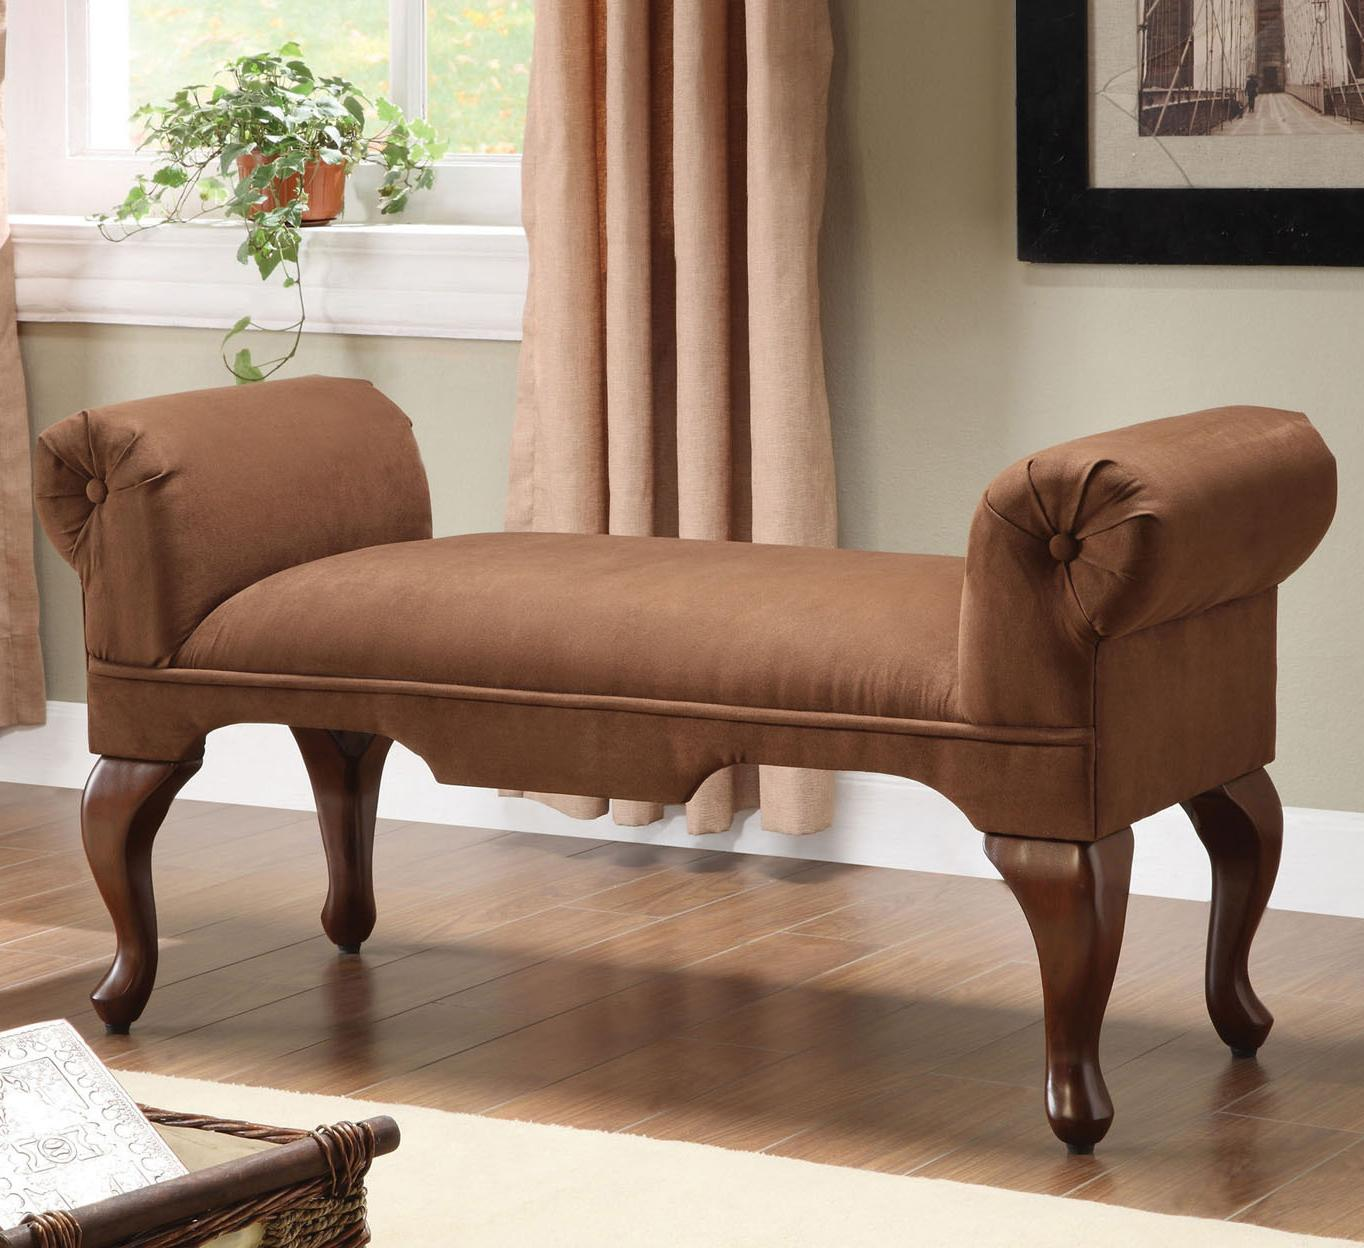 Acme Furniture Aston Rolled Arm Bench - Item Number: 05626